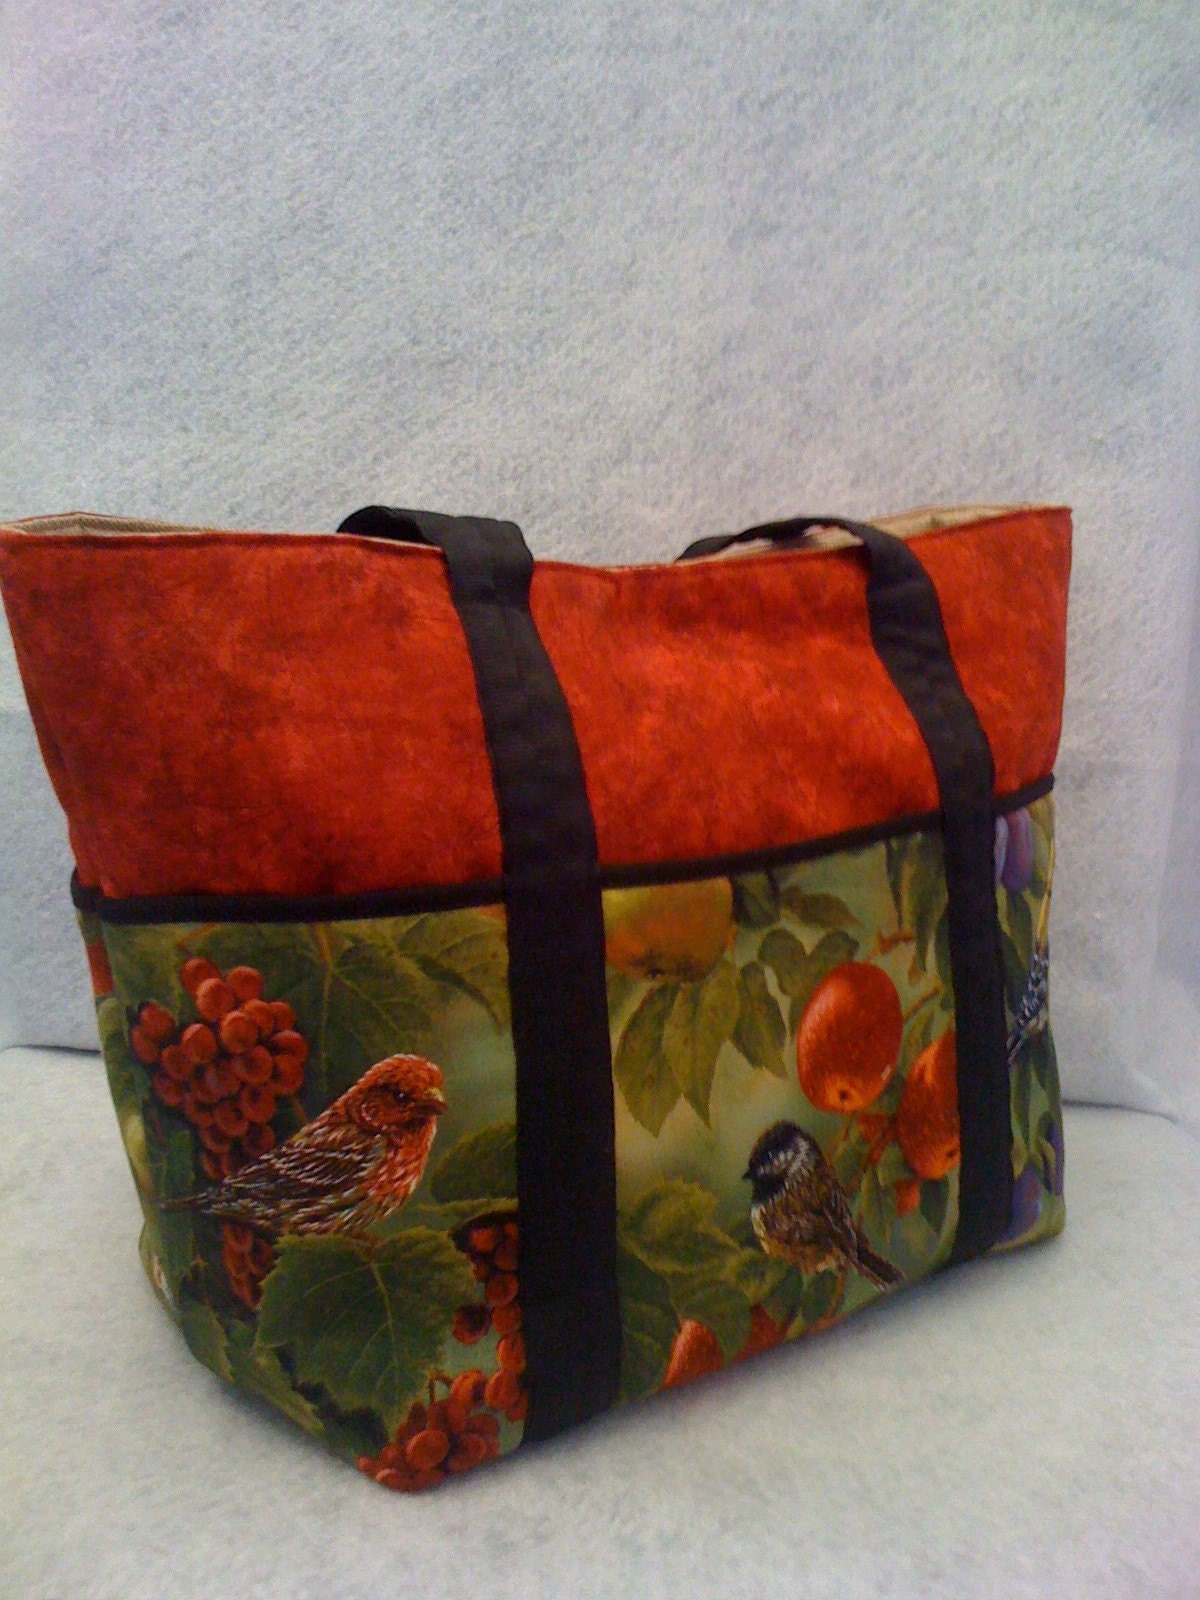 Tote Handbag with Finches in Vibrant Colors